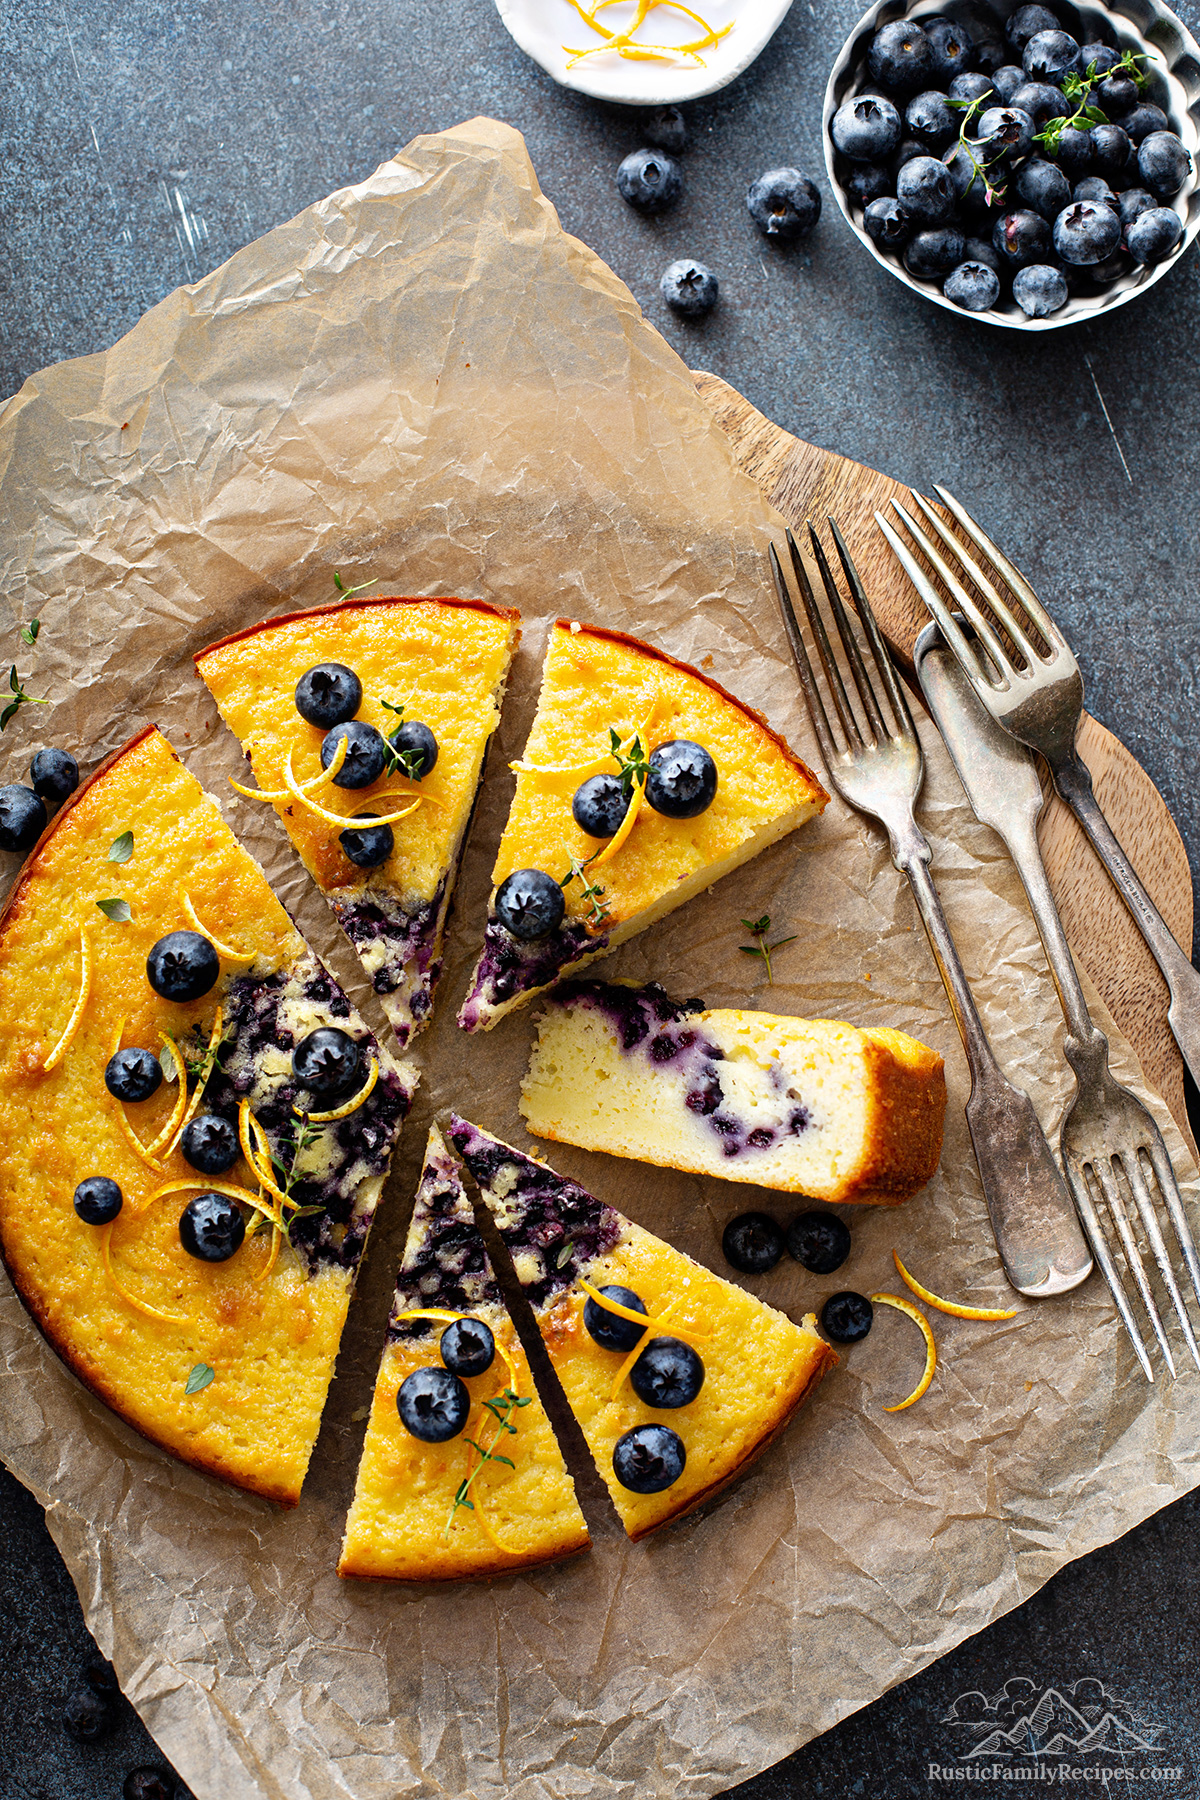 A sliced blueberry coffee cake on parchment next to rustic forks.